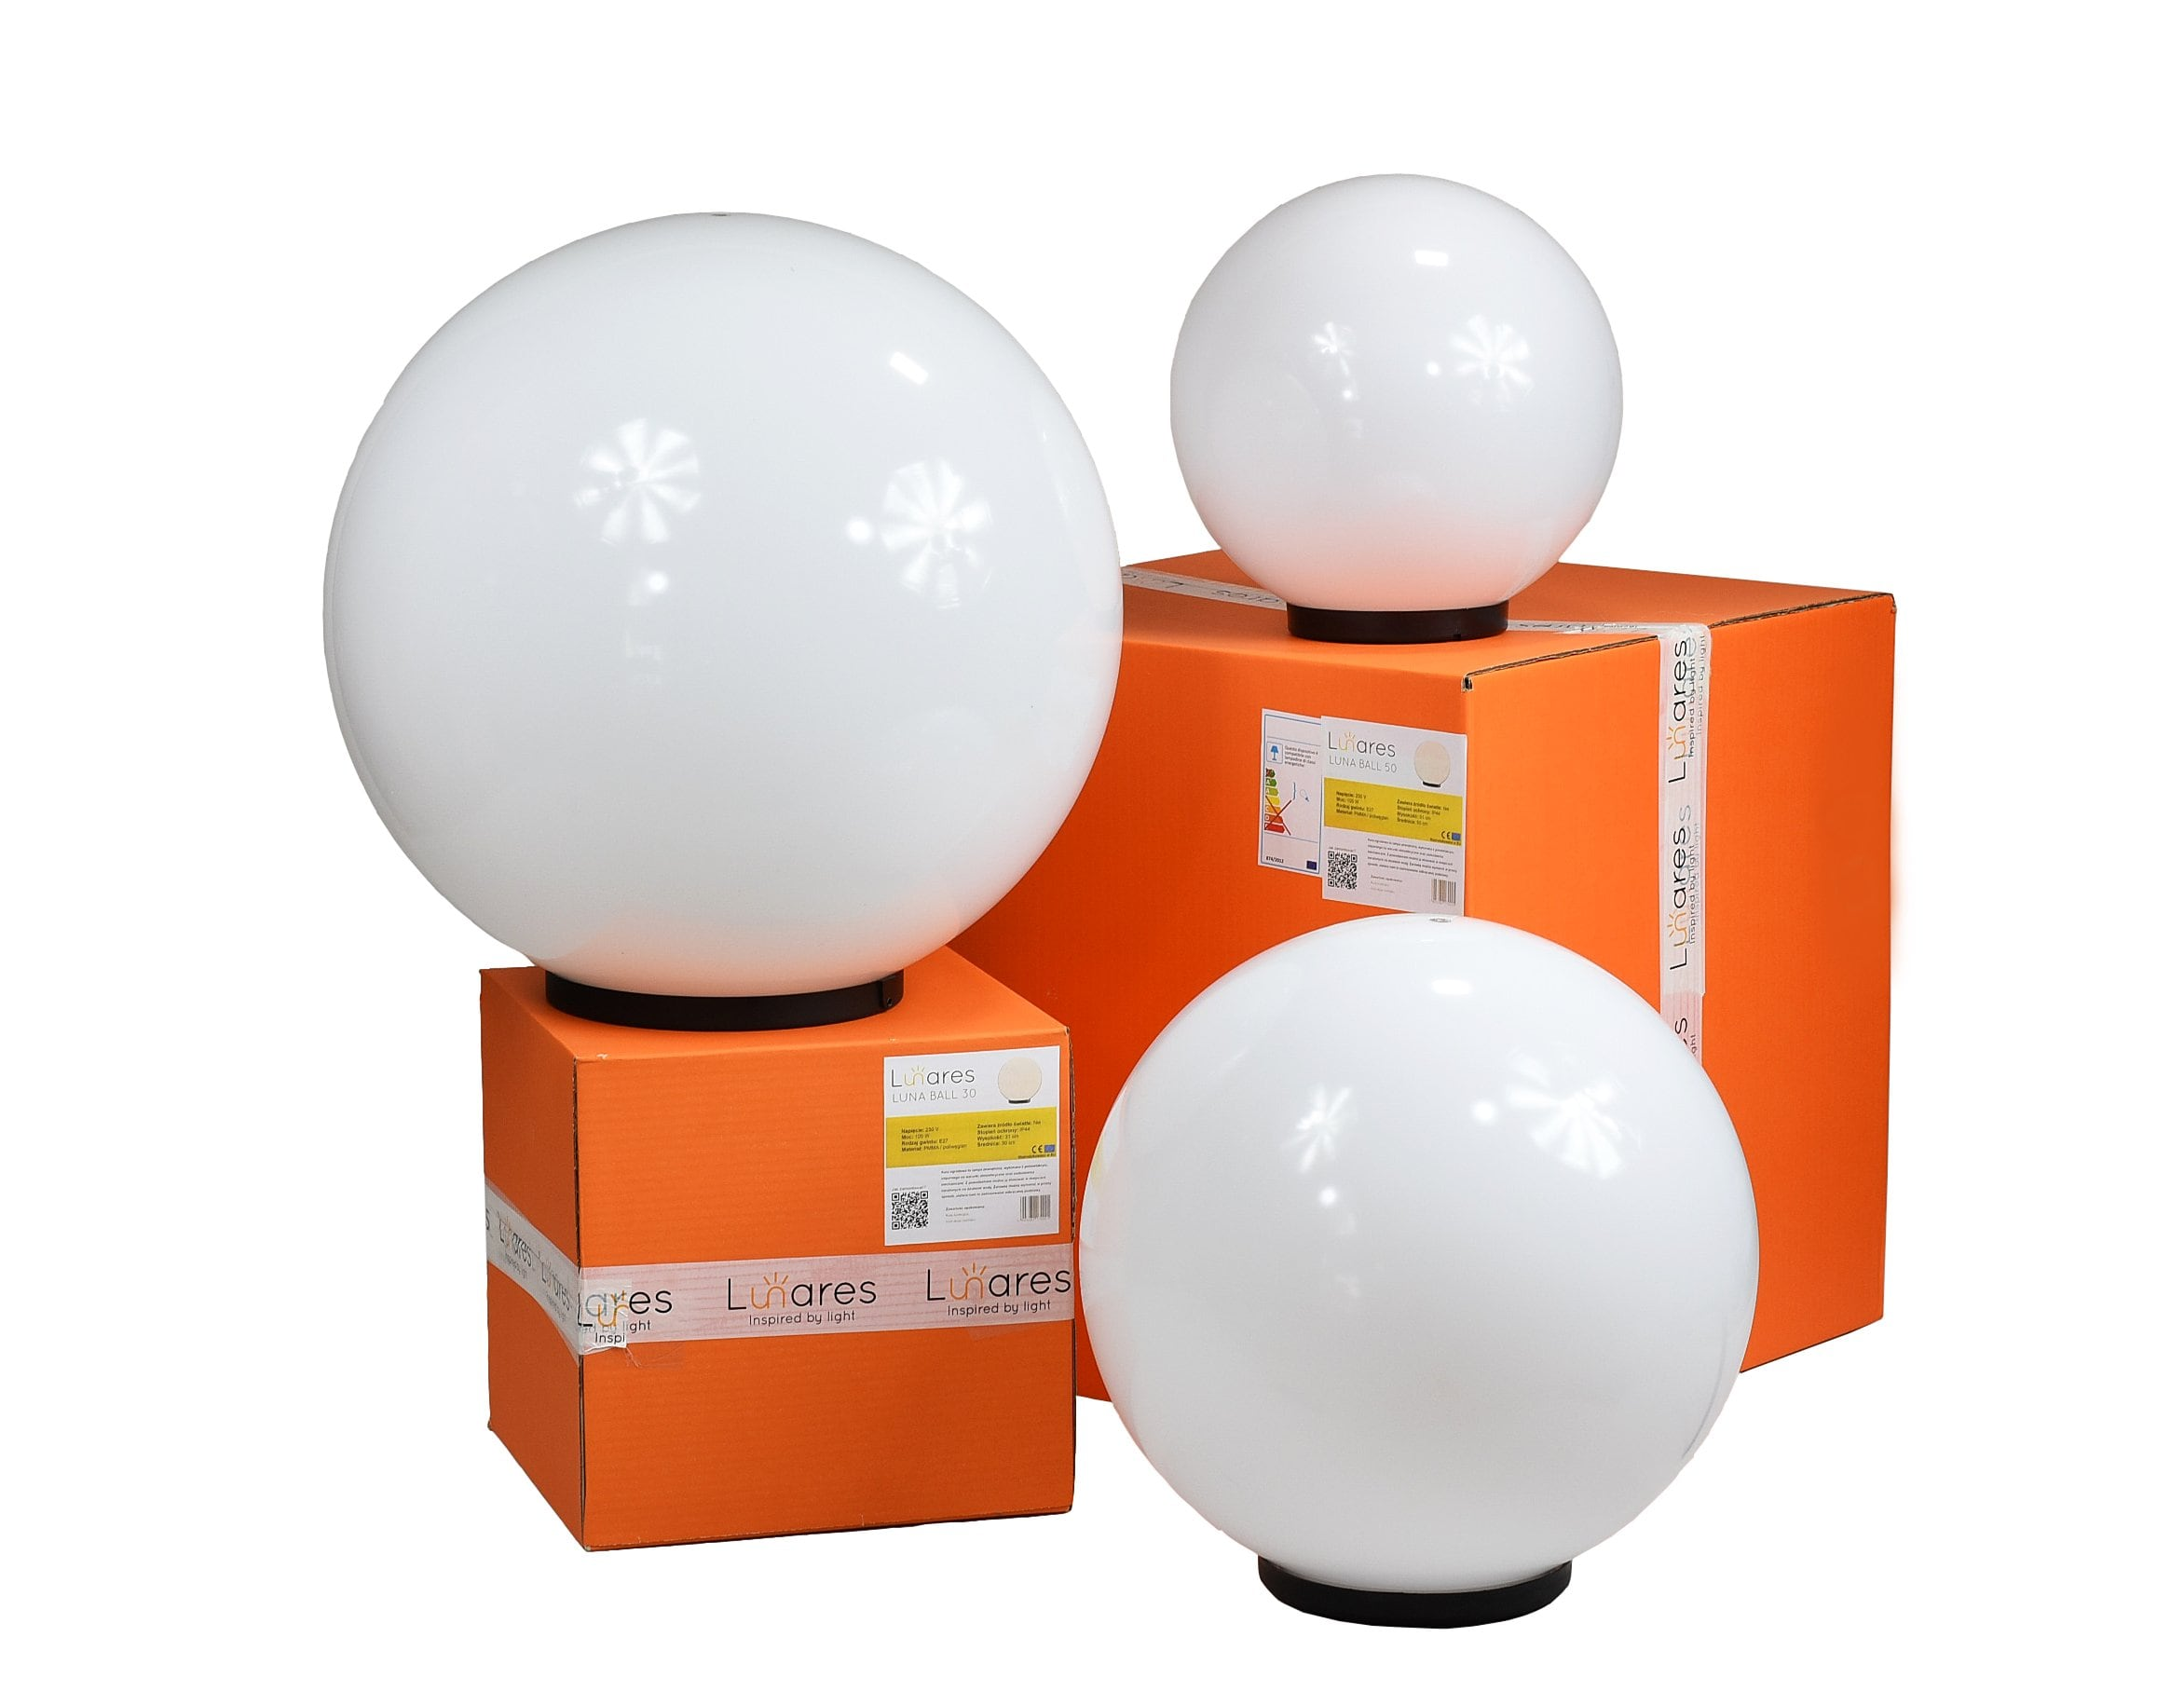 A set of decorative garden balls - Luna Balls 25, 30, 40 cm + Led Bulbs